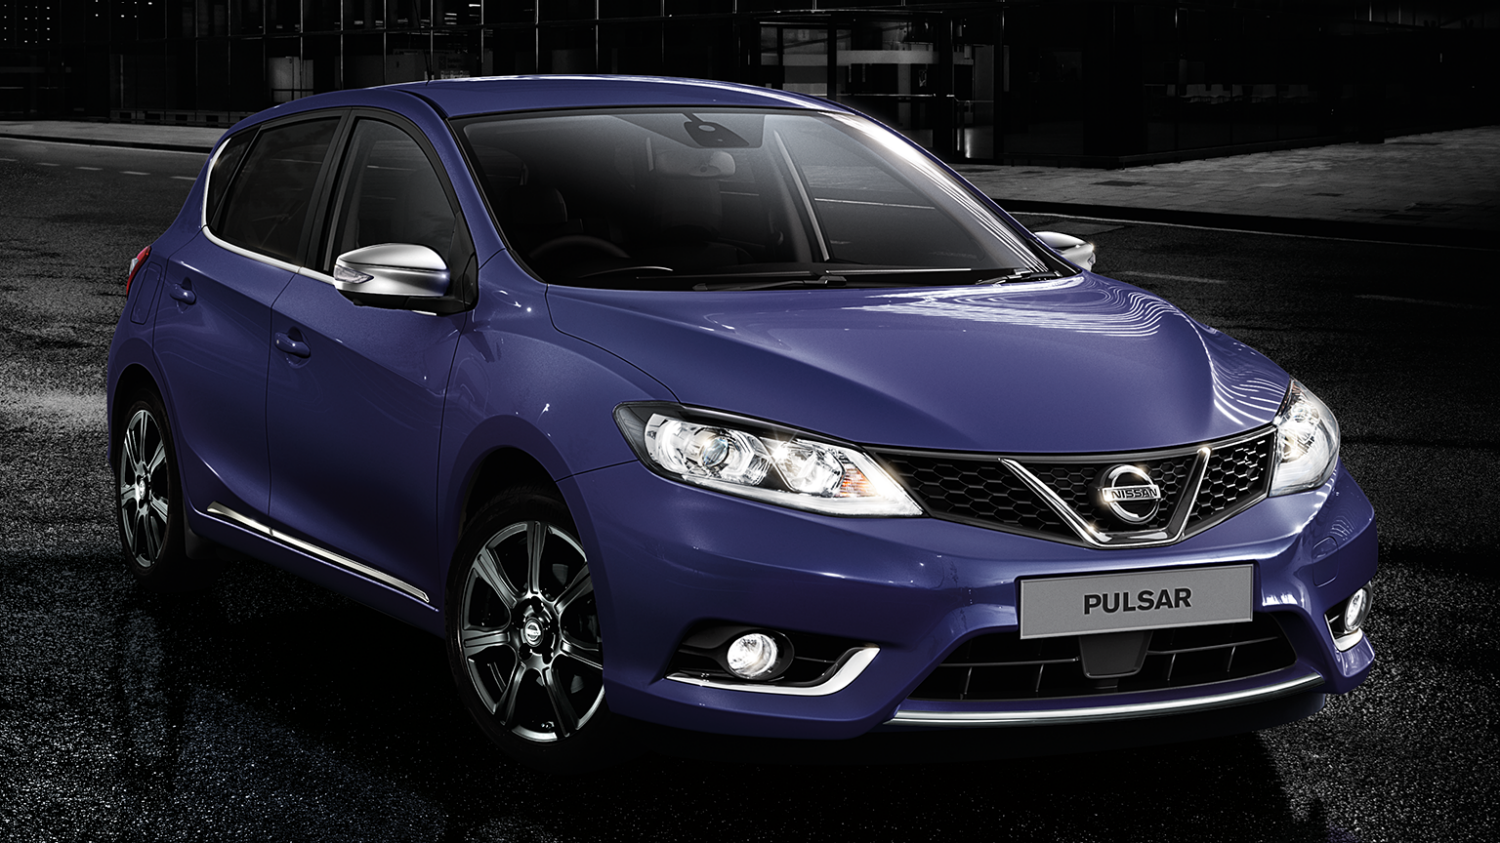 nissan pulsar hatchback family car nissan. Black Bedroom Furniture Sets. Home Design Ideas